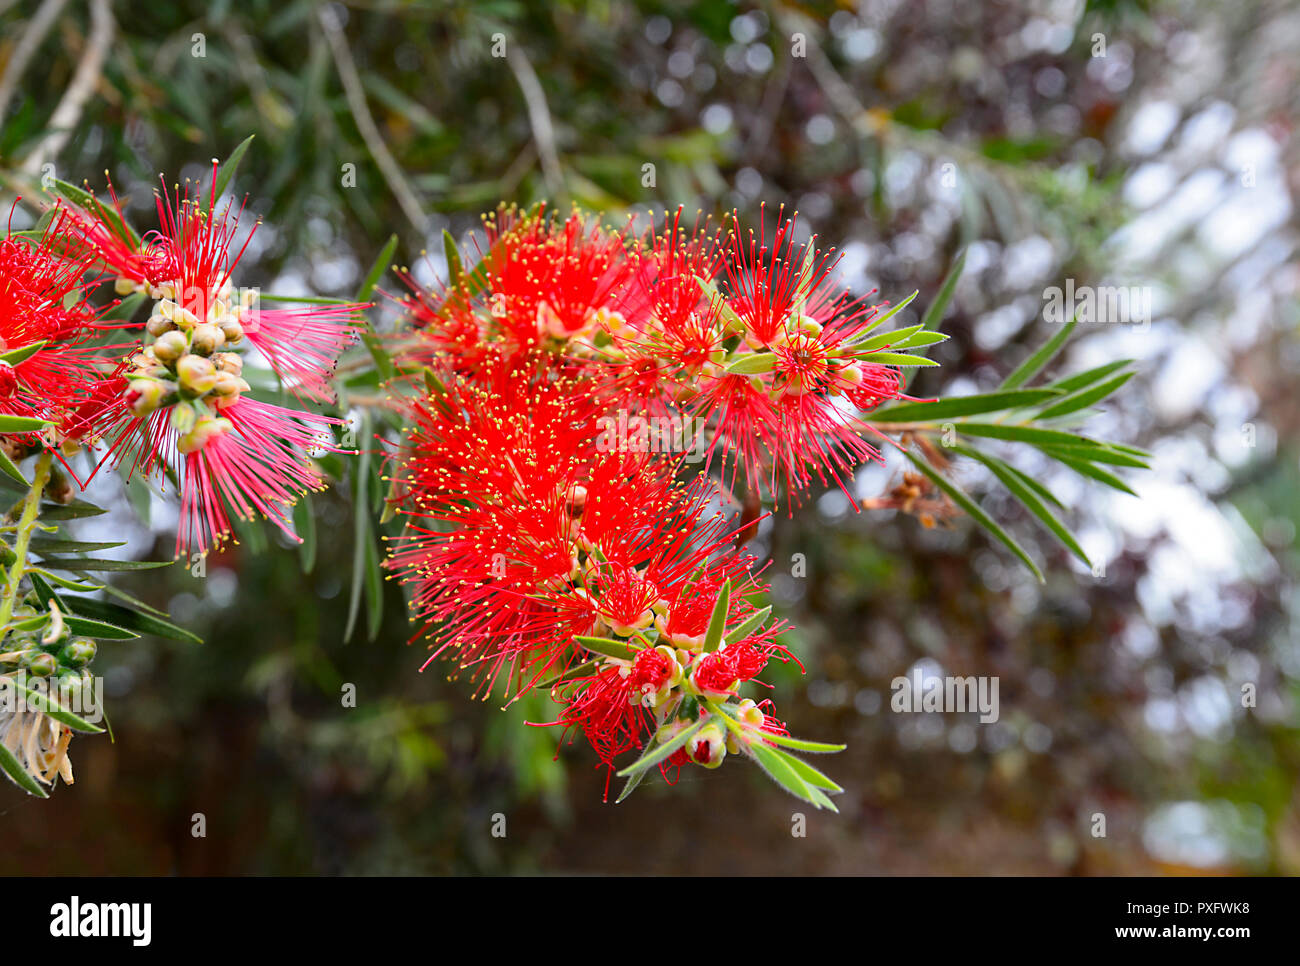 Red Bottlebrush flowers in a tropical garden, Cairns, Far North Queensland, FNQ, QLD, Australia - Stock Image